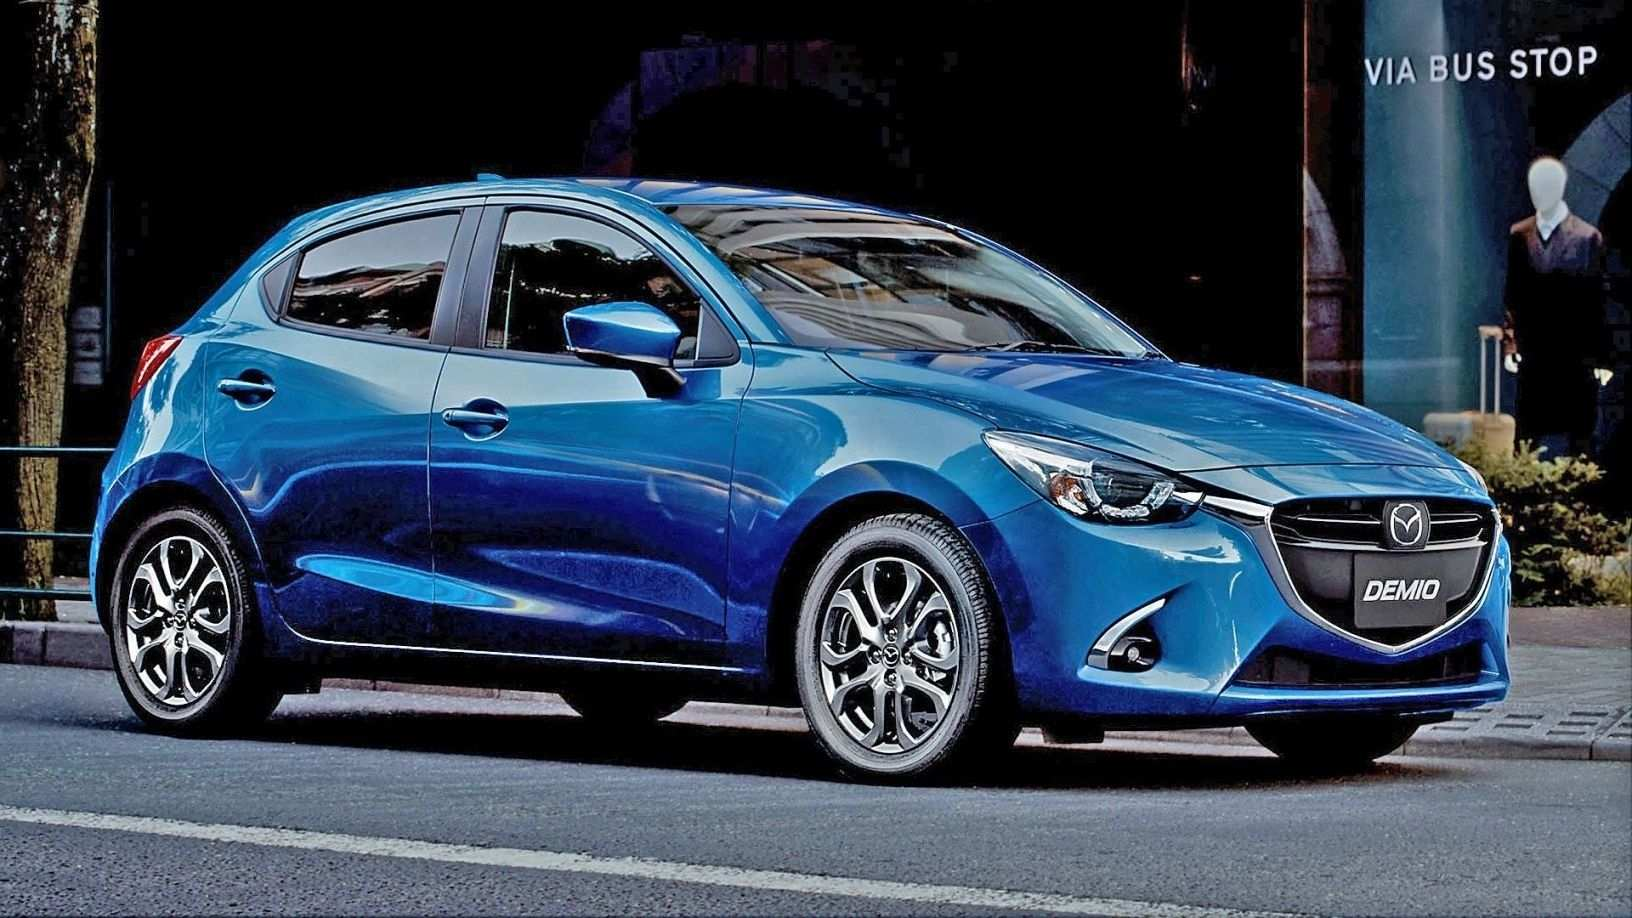 20 New The Mazda 2 2019 Lebanon Specs And Review Performance